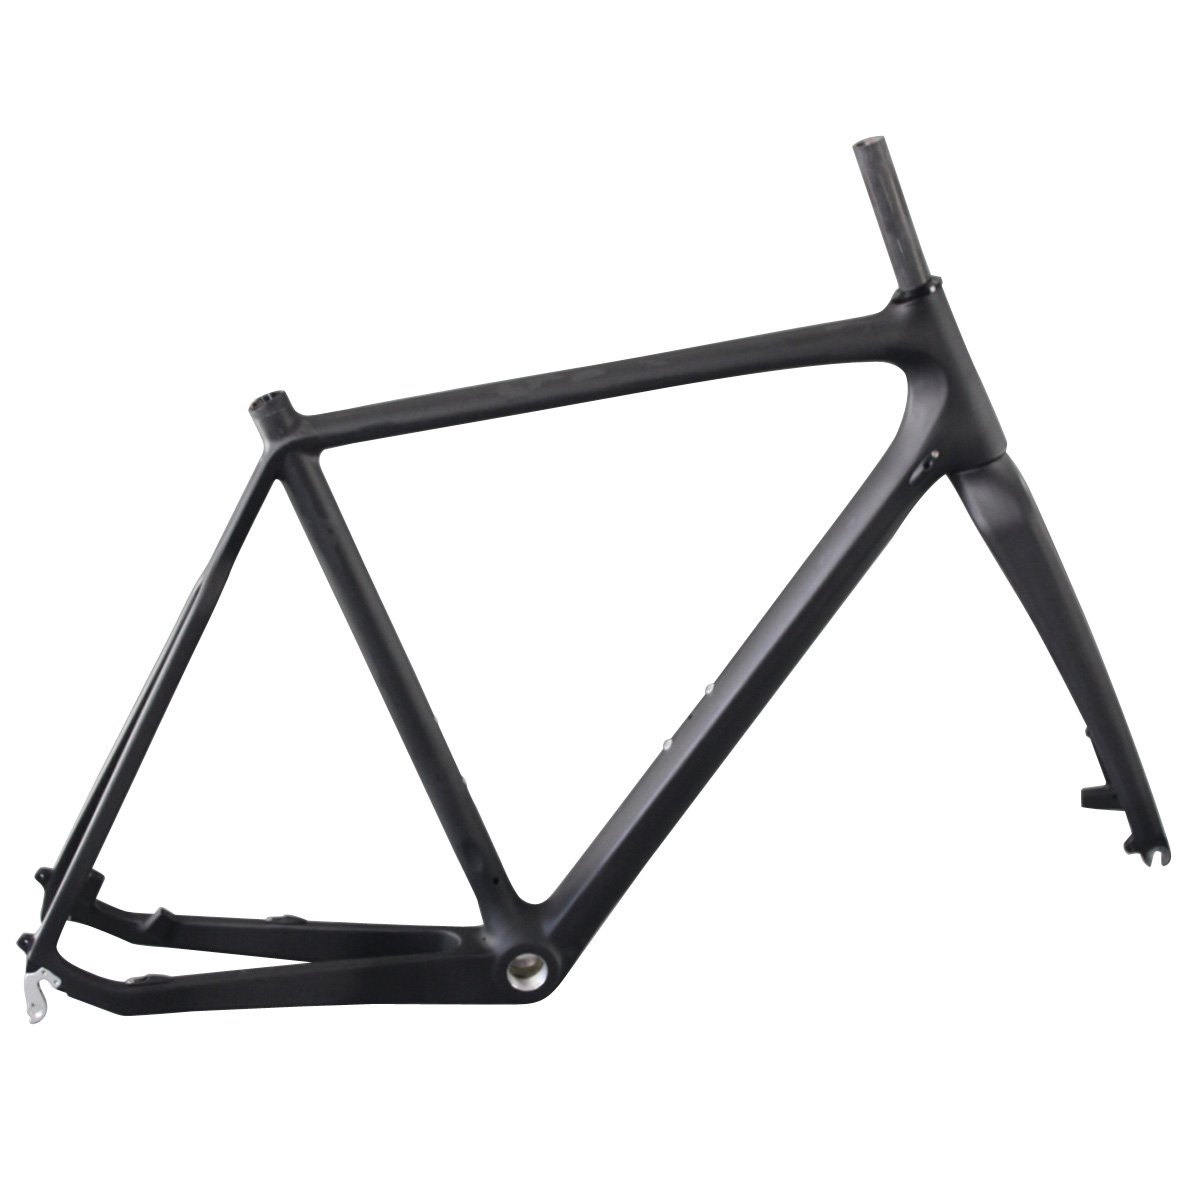 ican full carbon cyclocross frame